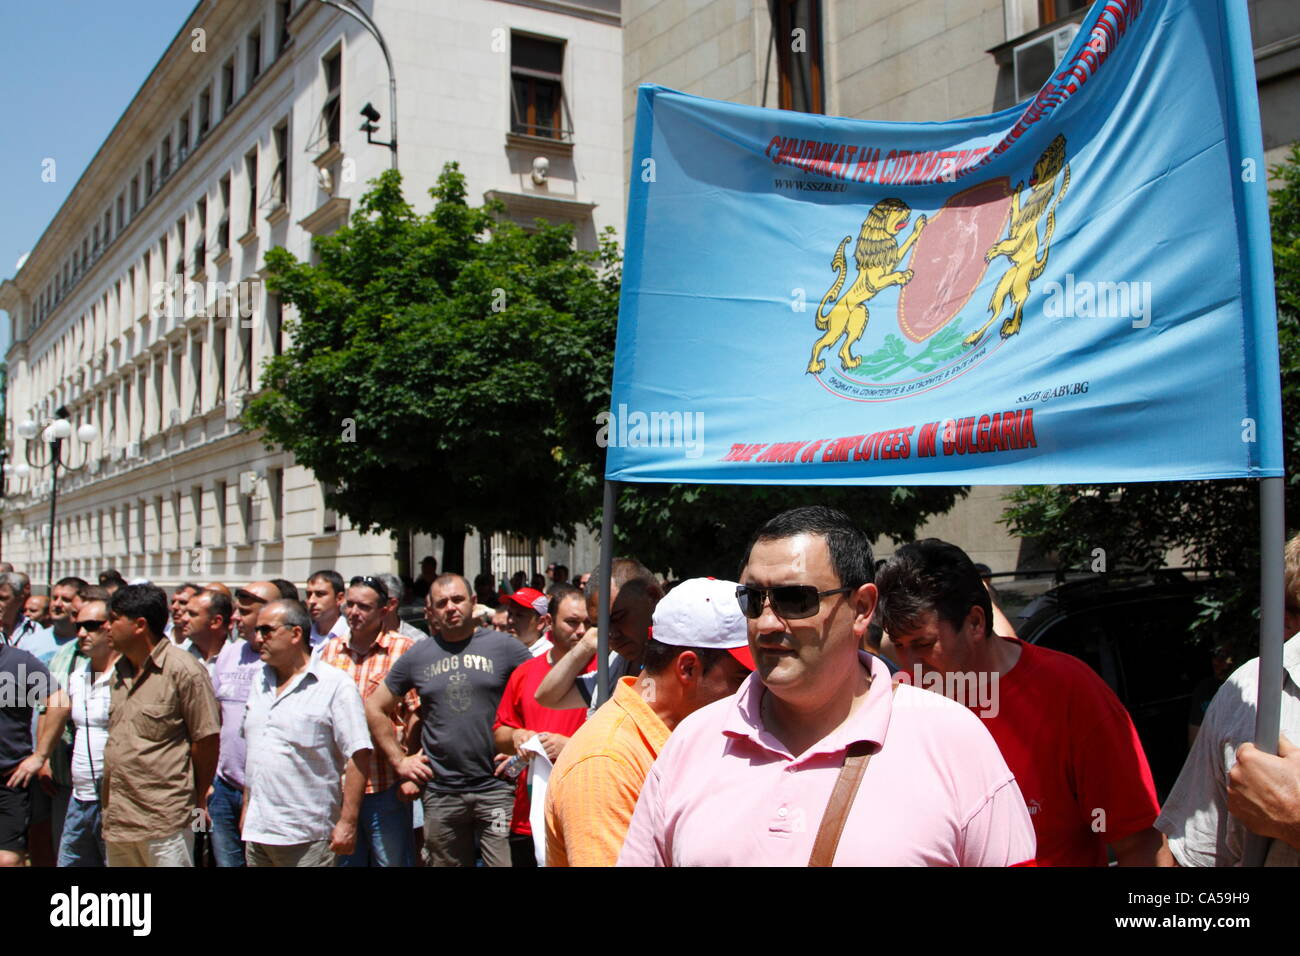 Several hundred employees of correctional facilities in Bulgaria gather in front of the Ministry of Justice in Sofia - Stock Image